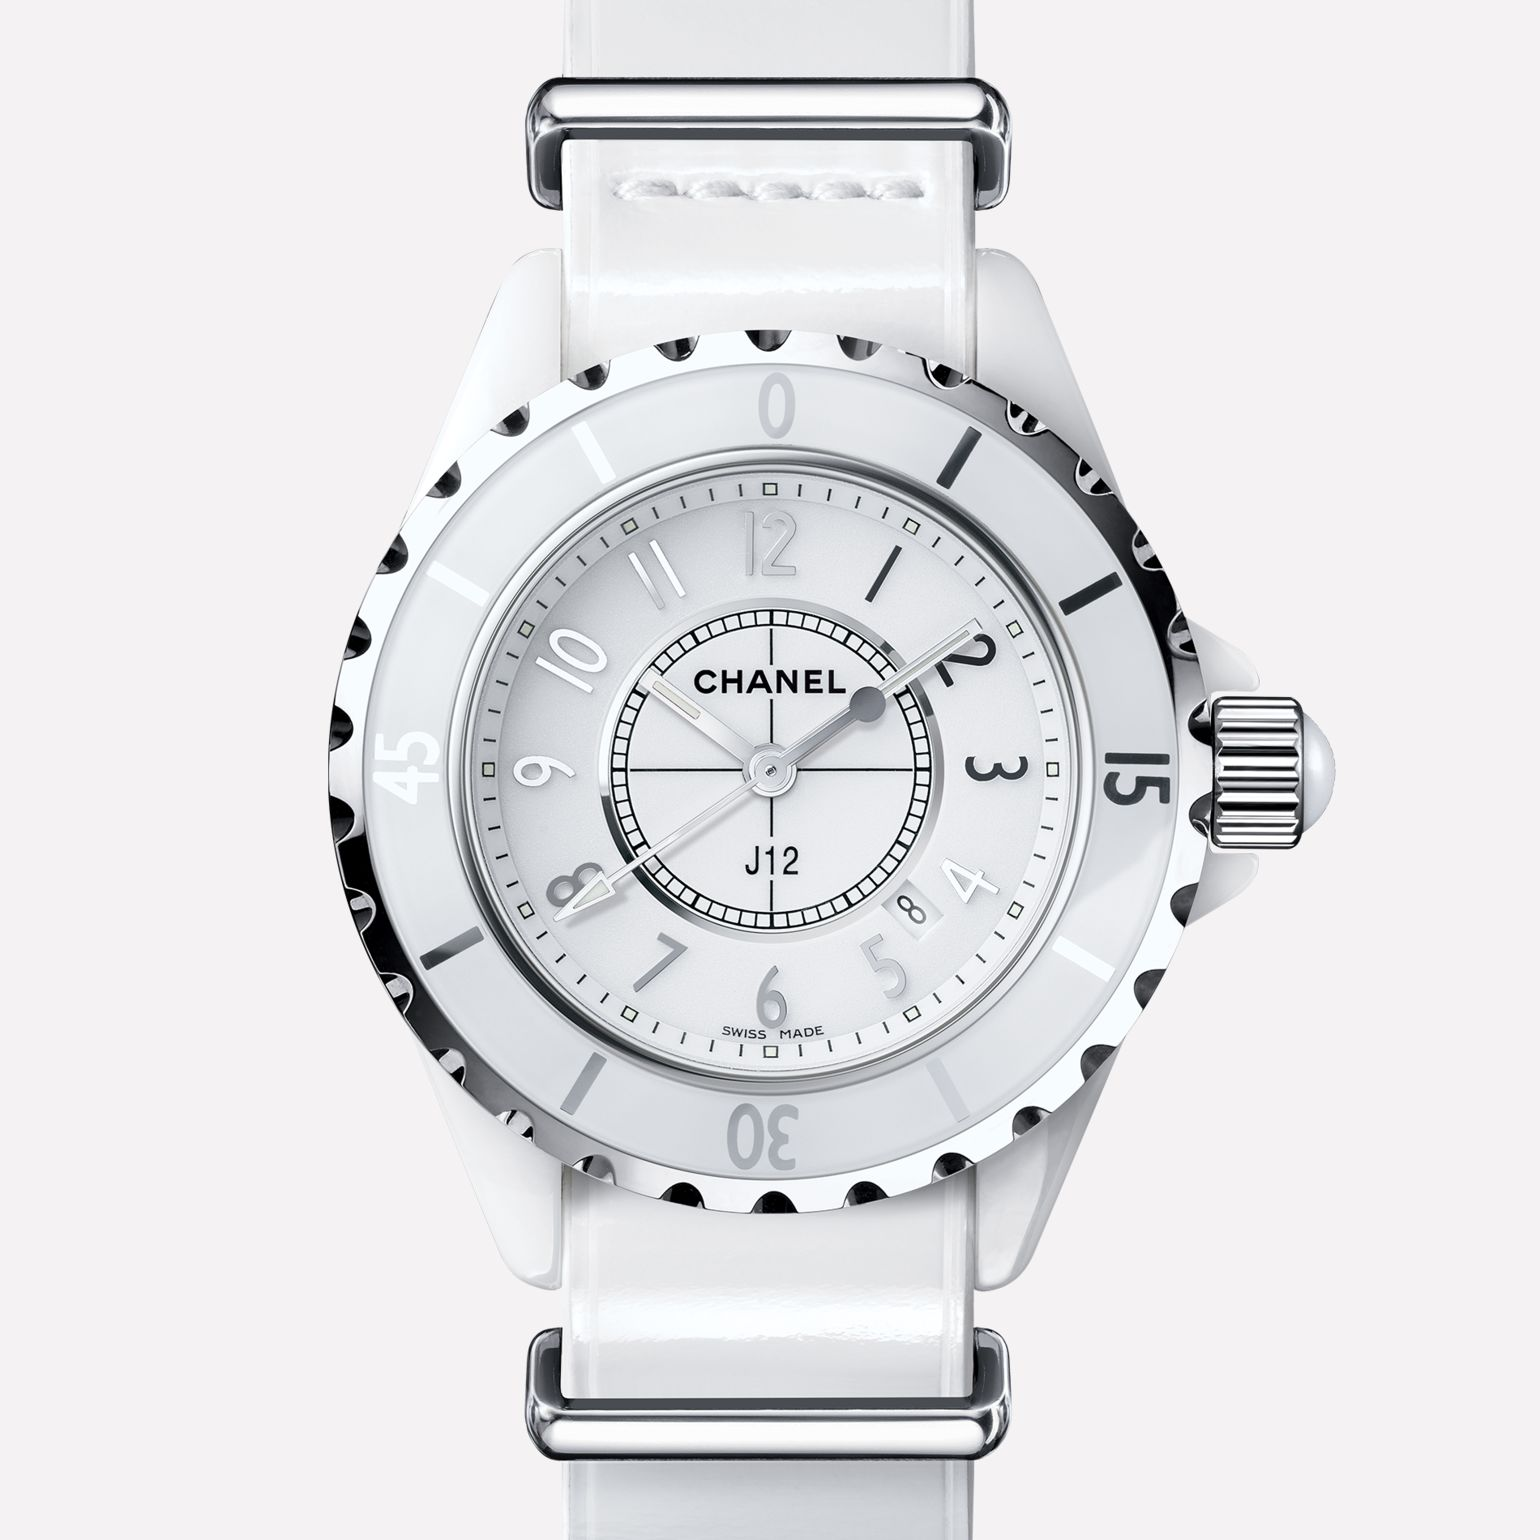 J12-G10 Gloss Watch White ceramic and steel, patent calfskin strap